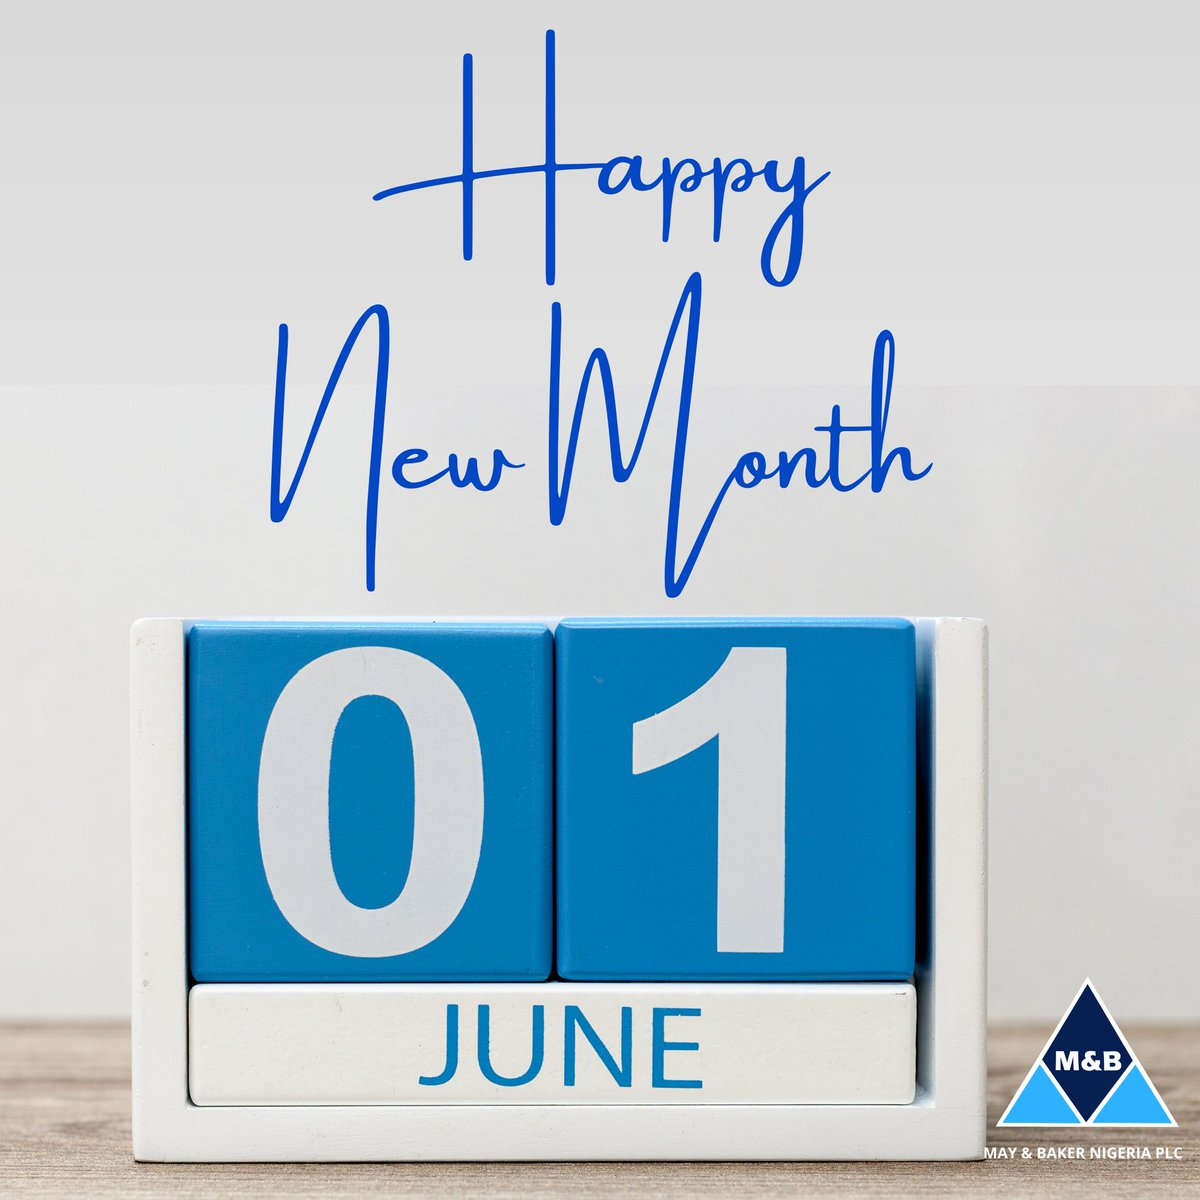 May this month be better than the last. #June1st #HappyNewMonth #StayAlert #StayHome #STAYSAFE pic.twitter.com/y3Cj1YGerf